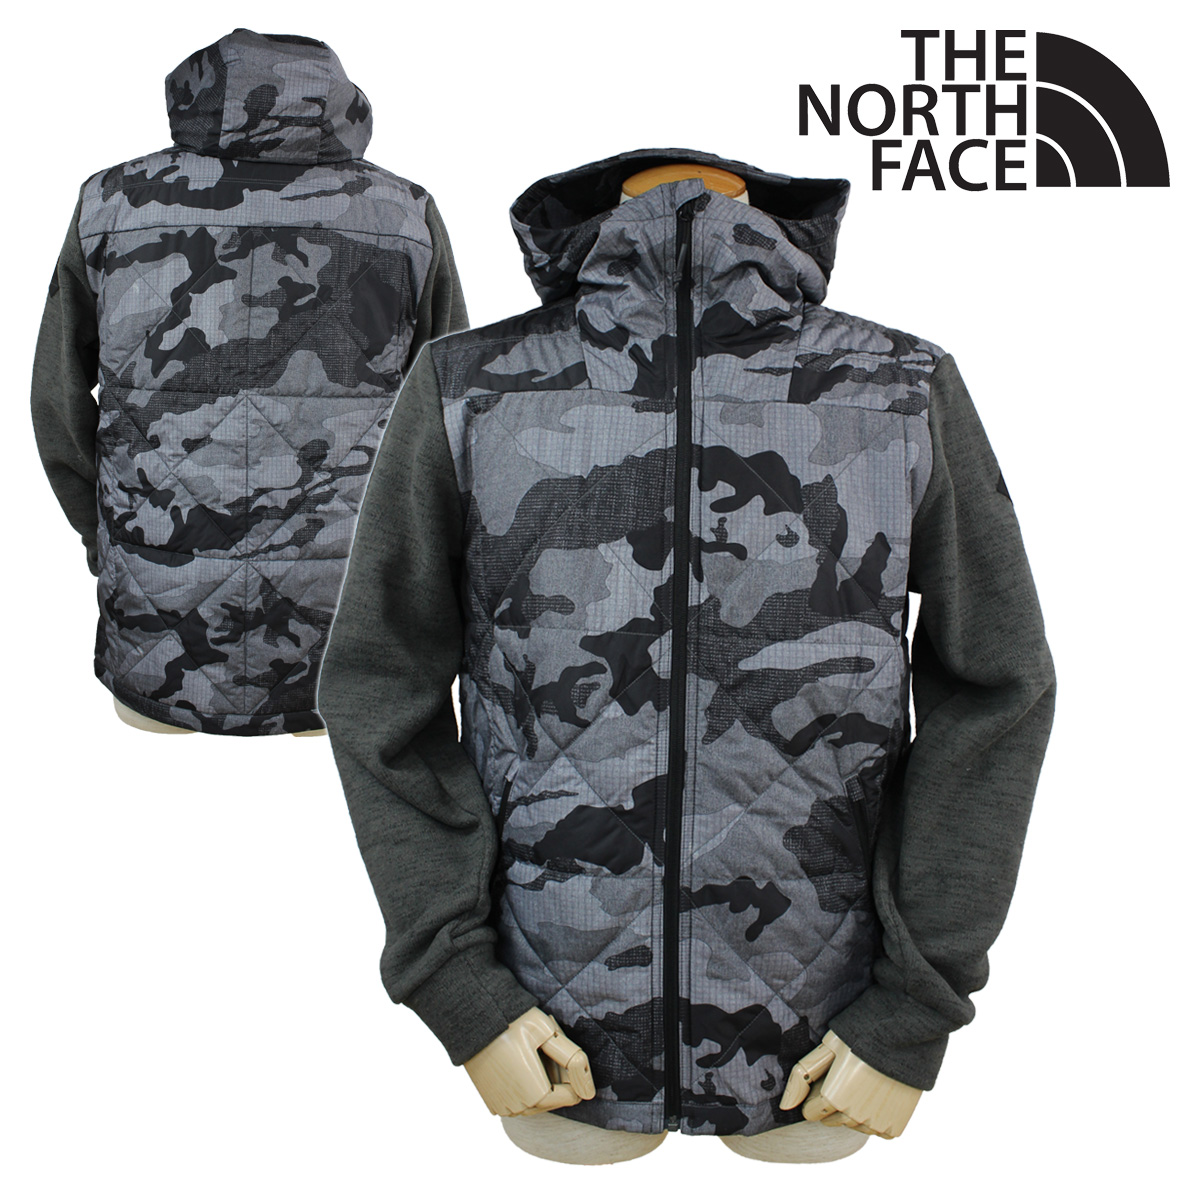 d837cddb7d43 ALLSPORTS  North face THE NORTH FACE mens jacket Quilted Jacket CYK6 MEN s  SKAGIT JACKET  10 21 new in stock